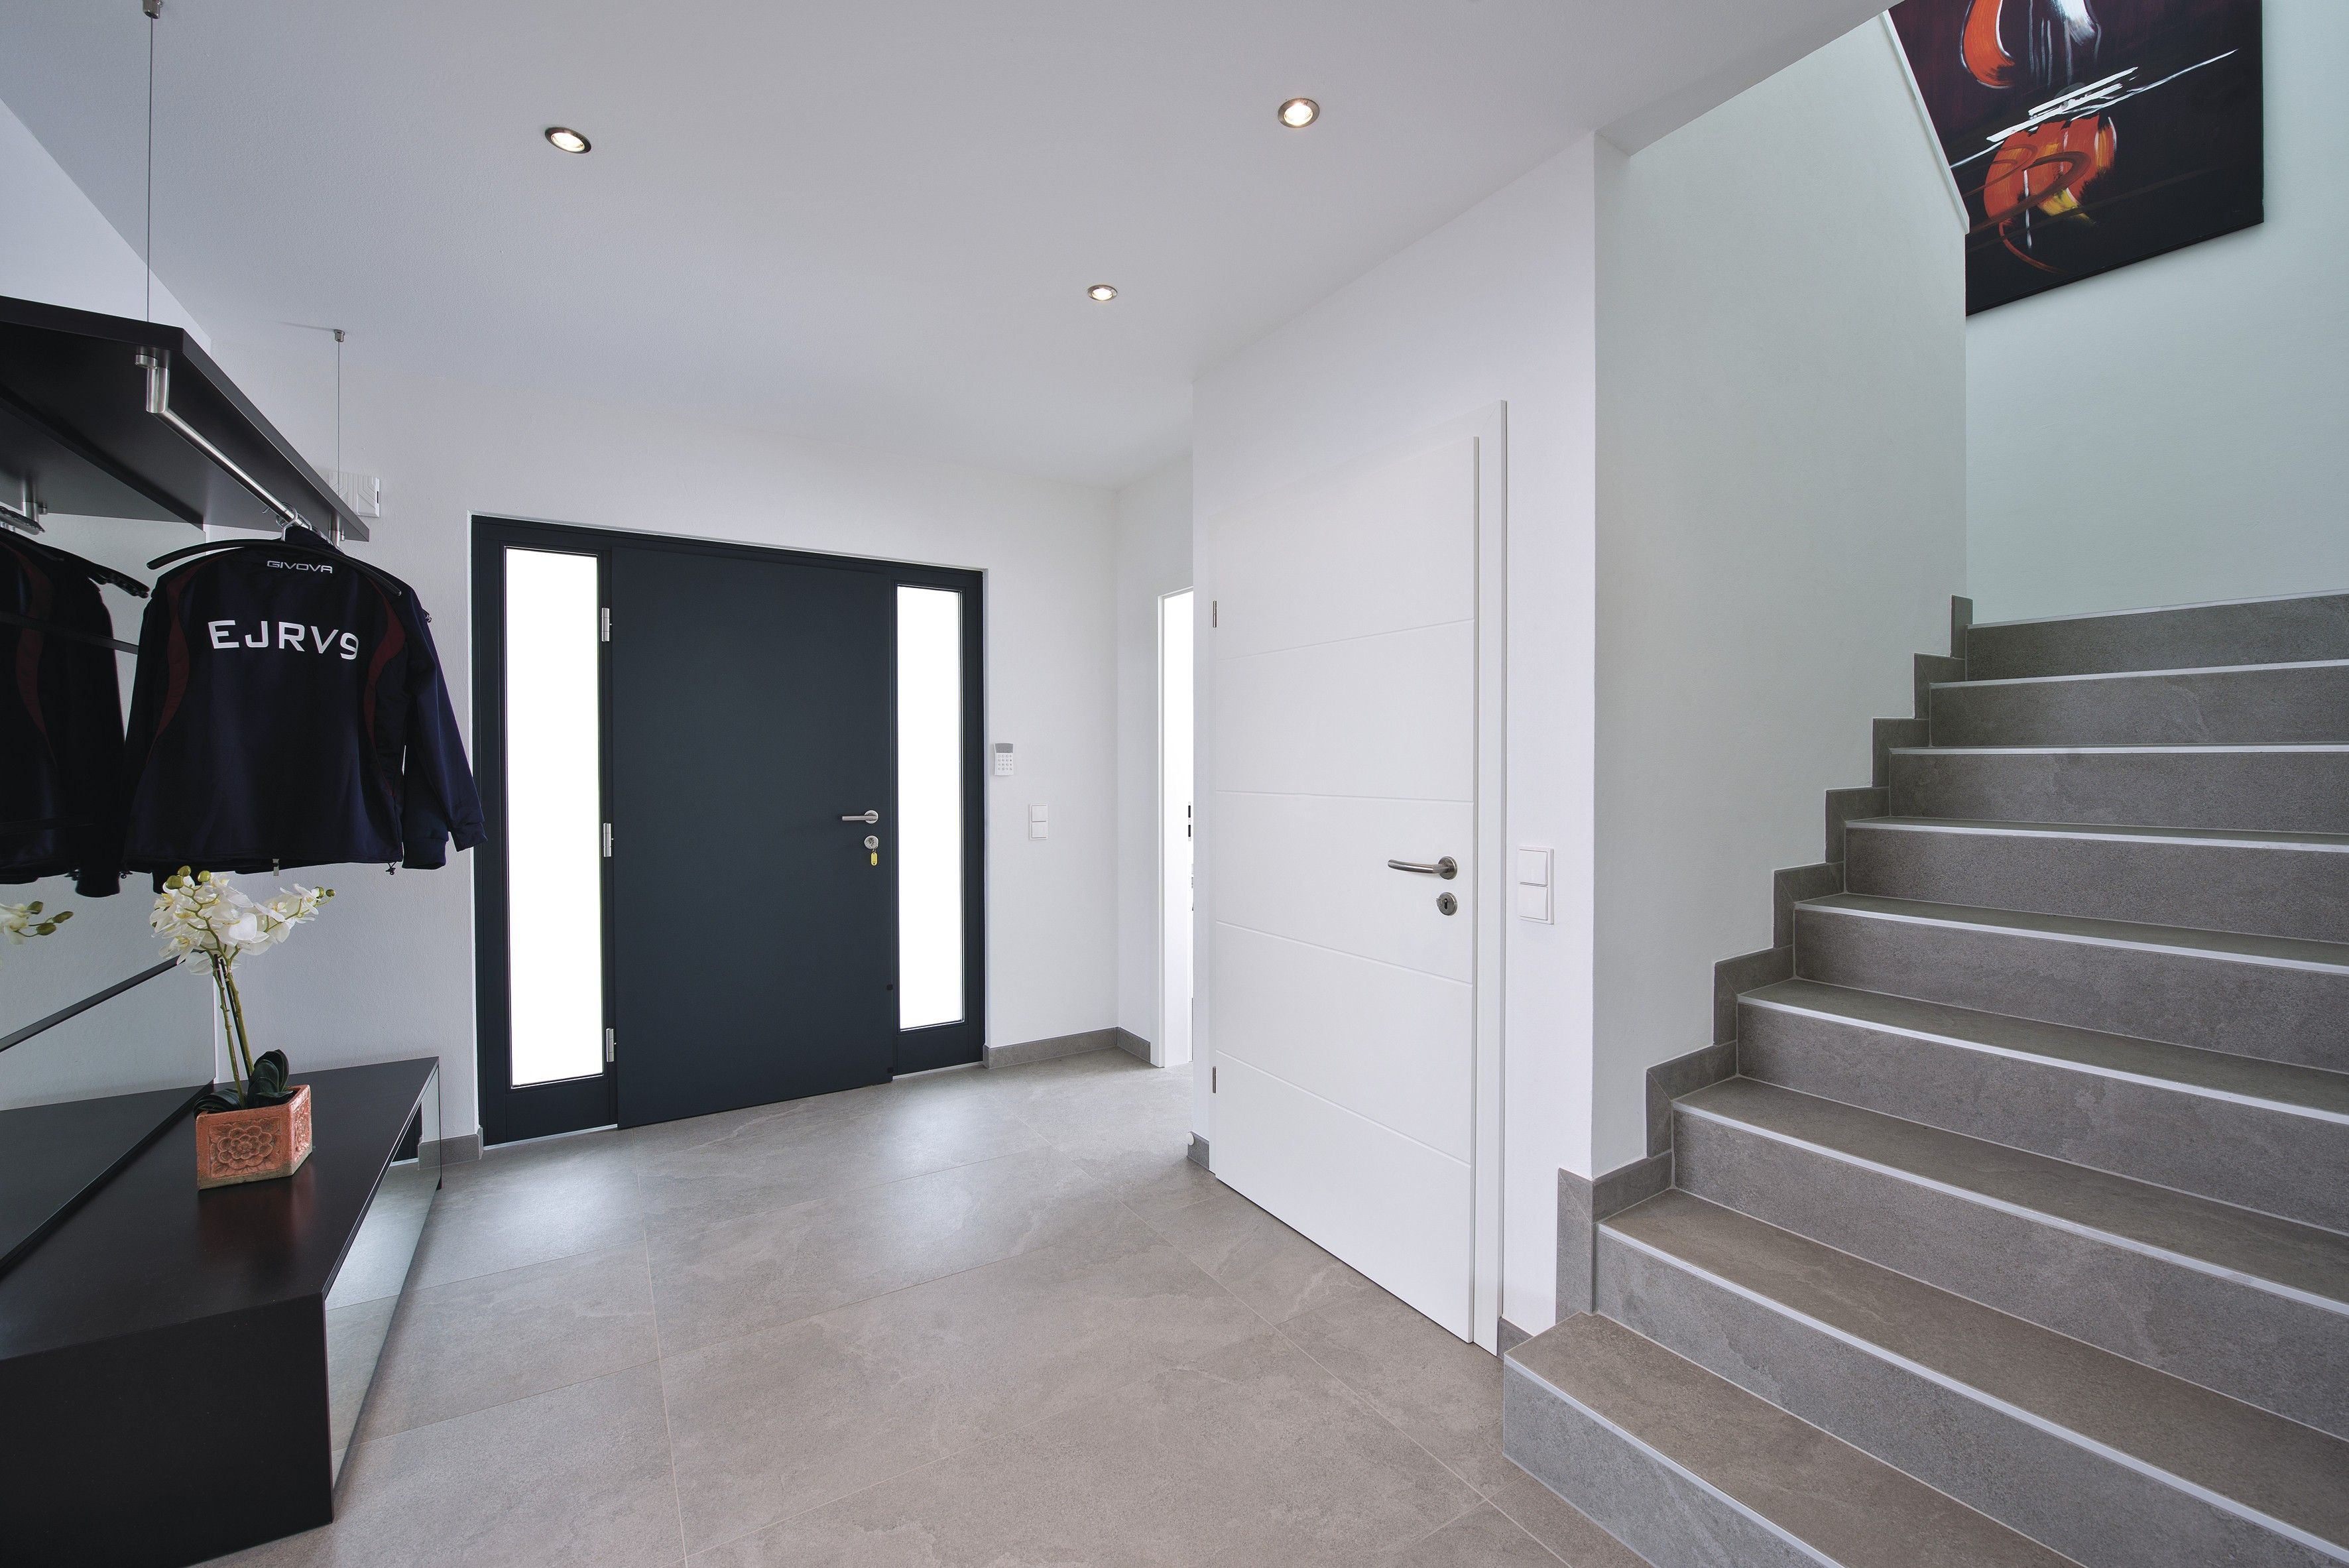 Haustr eingang treppe frontdoor entrance staircase